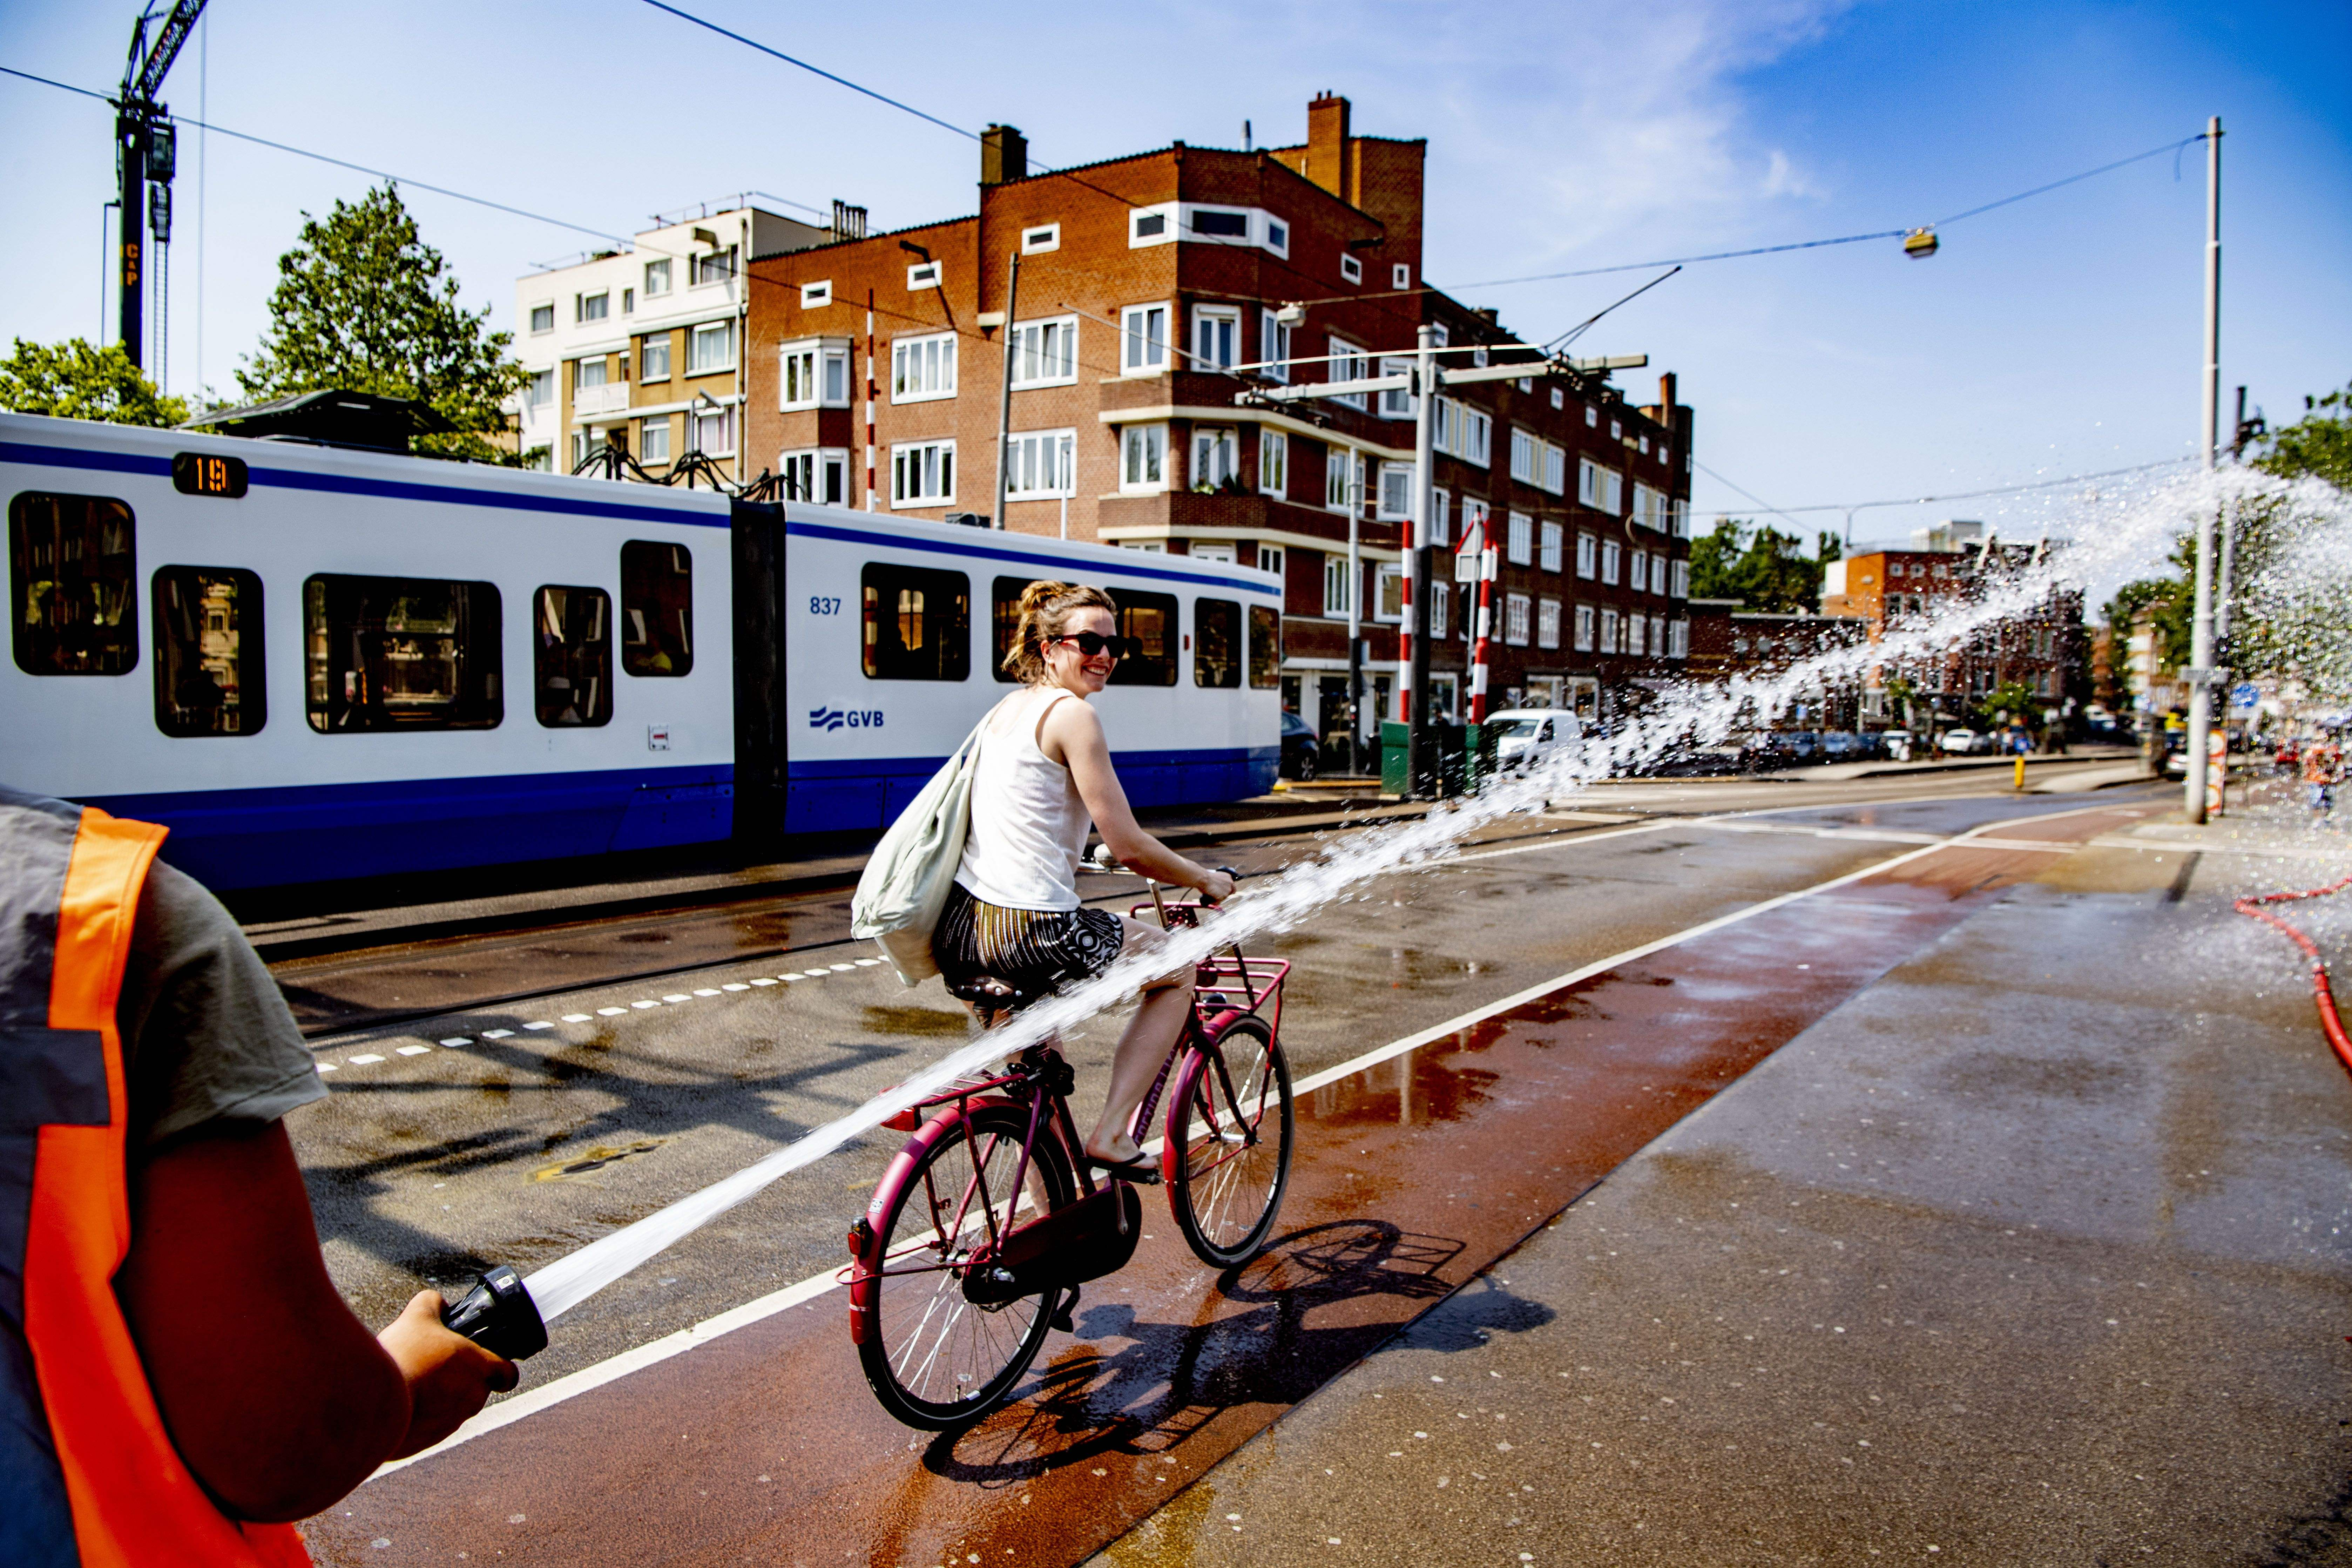 A firefighter sprays water as a woman rides her bicycle on the Wiegbrug bridge during a heat wave in Amsterdam on July 25, 2019.